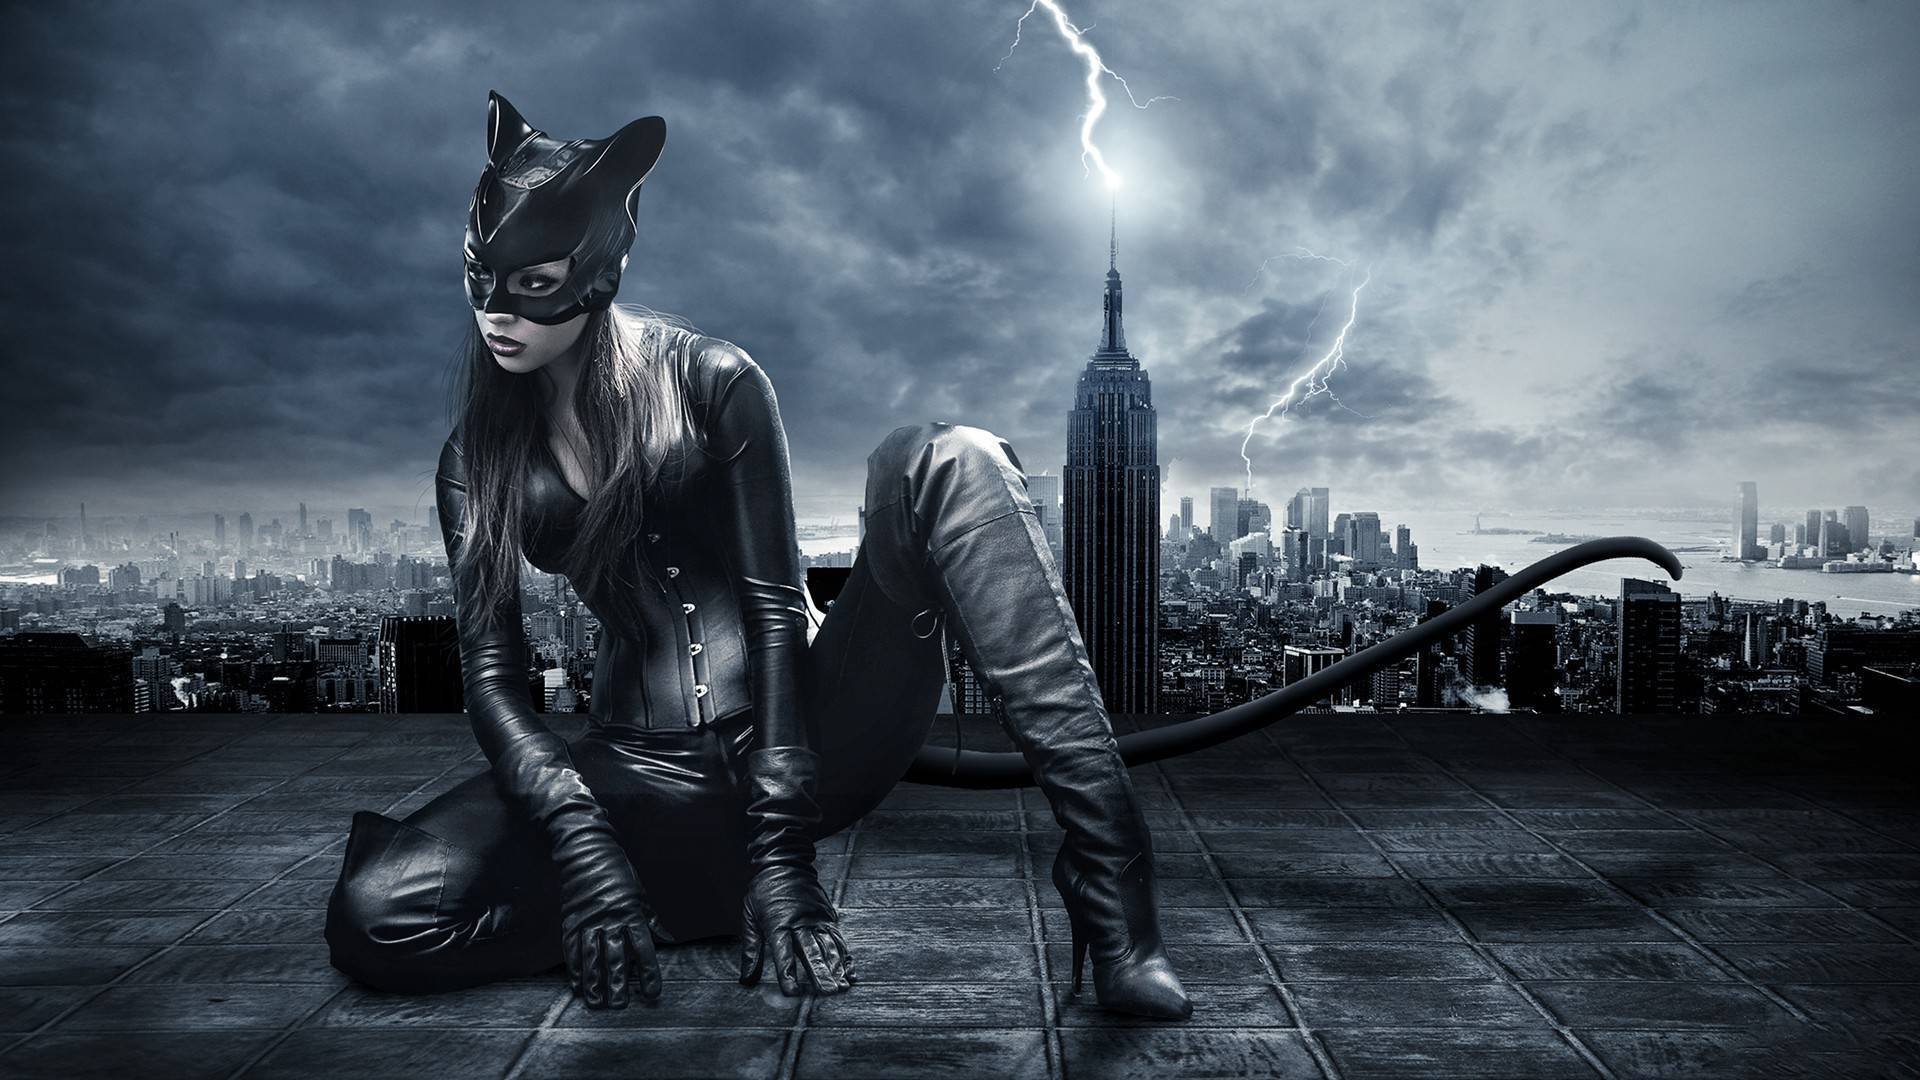 Le Fondo   Wallpapers Gratis y en HD CatWoman   HD Wallpaper 1920x1080